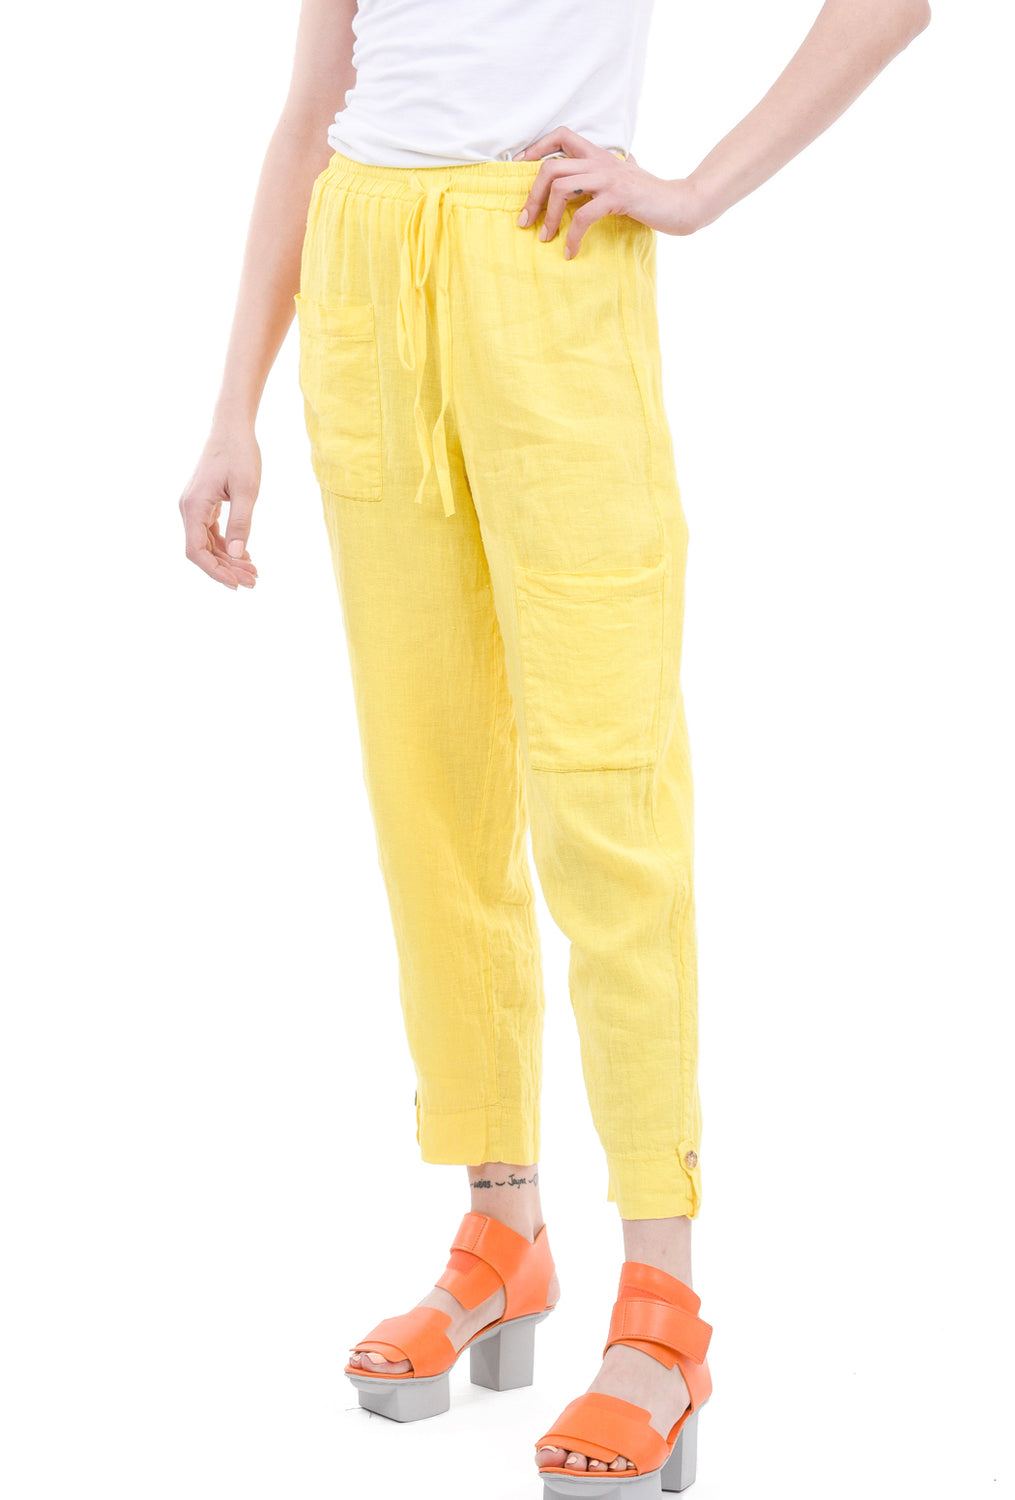 Luukaa Ruby Linen Pants, Yellow